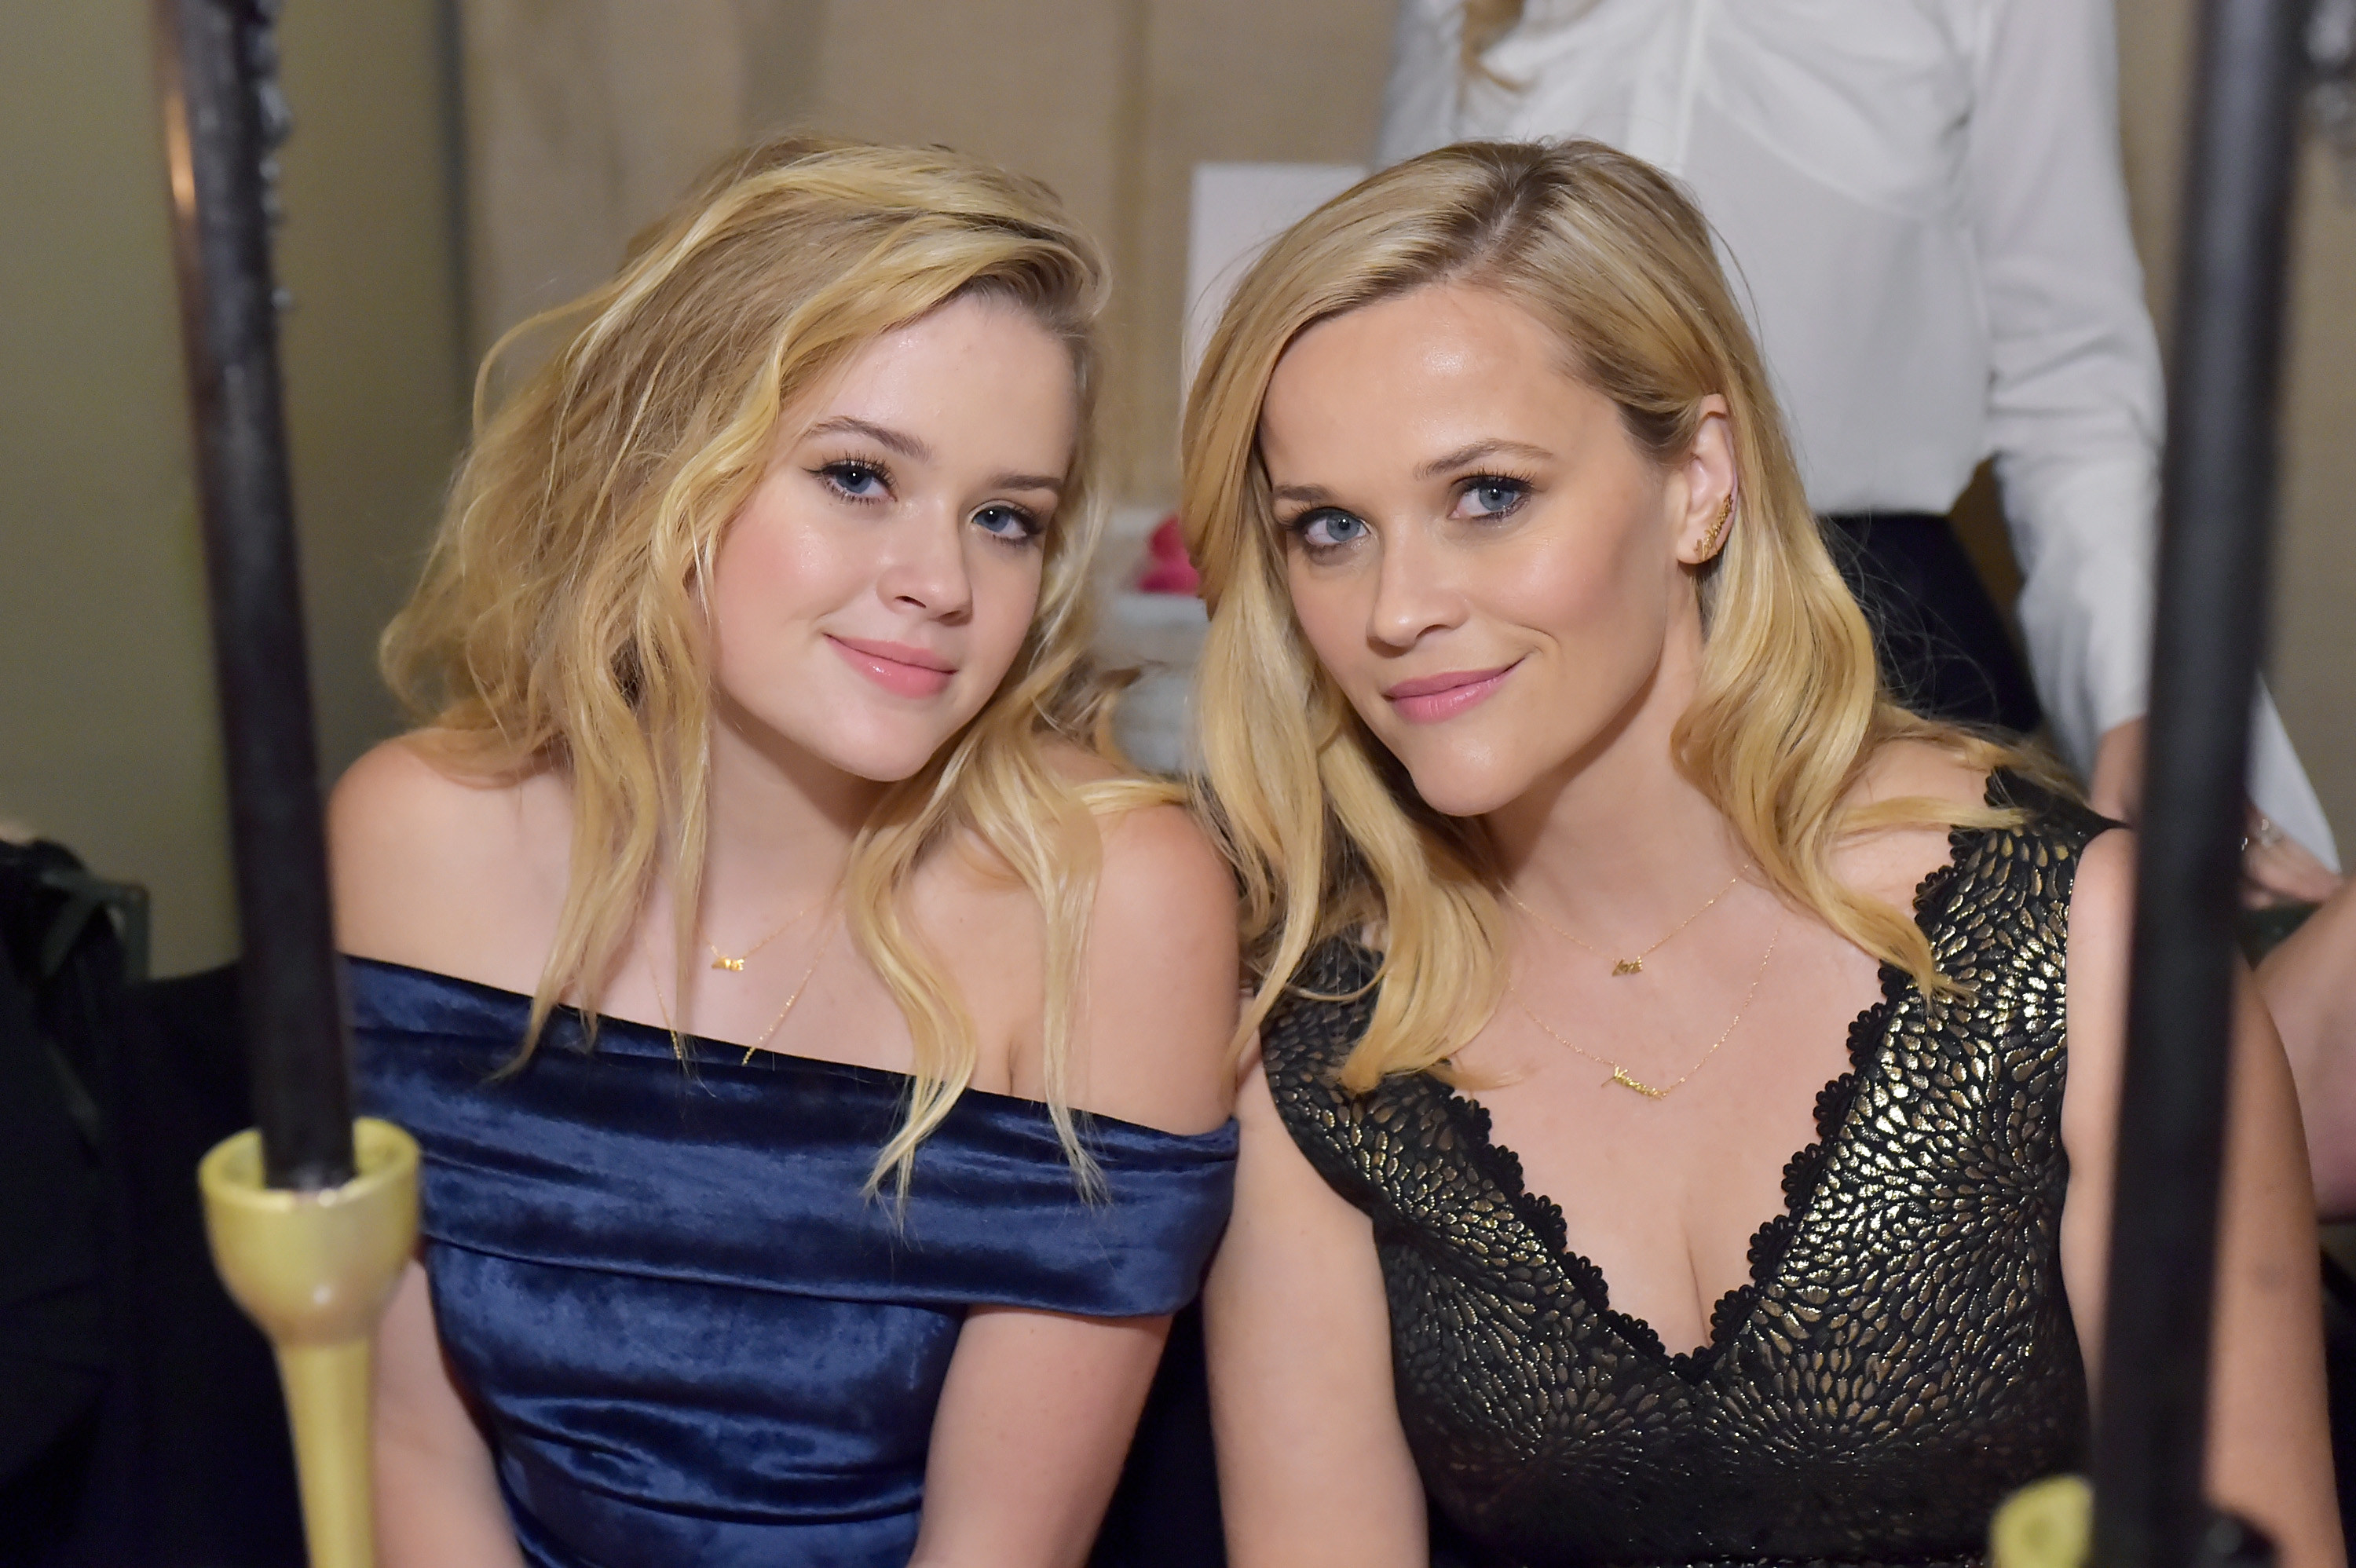 Ava and Reese sit close to each other